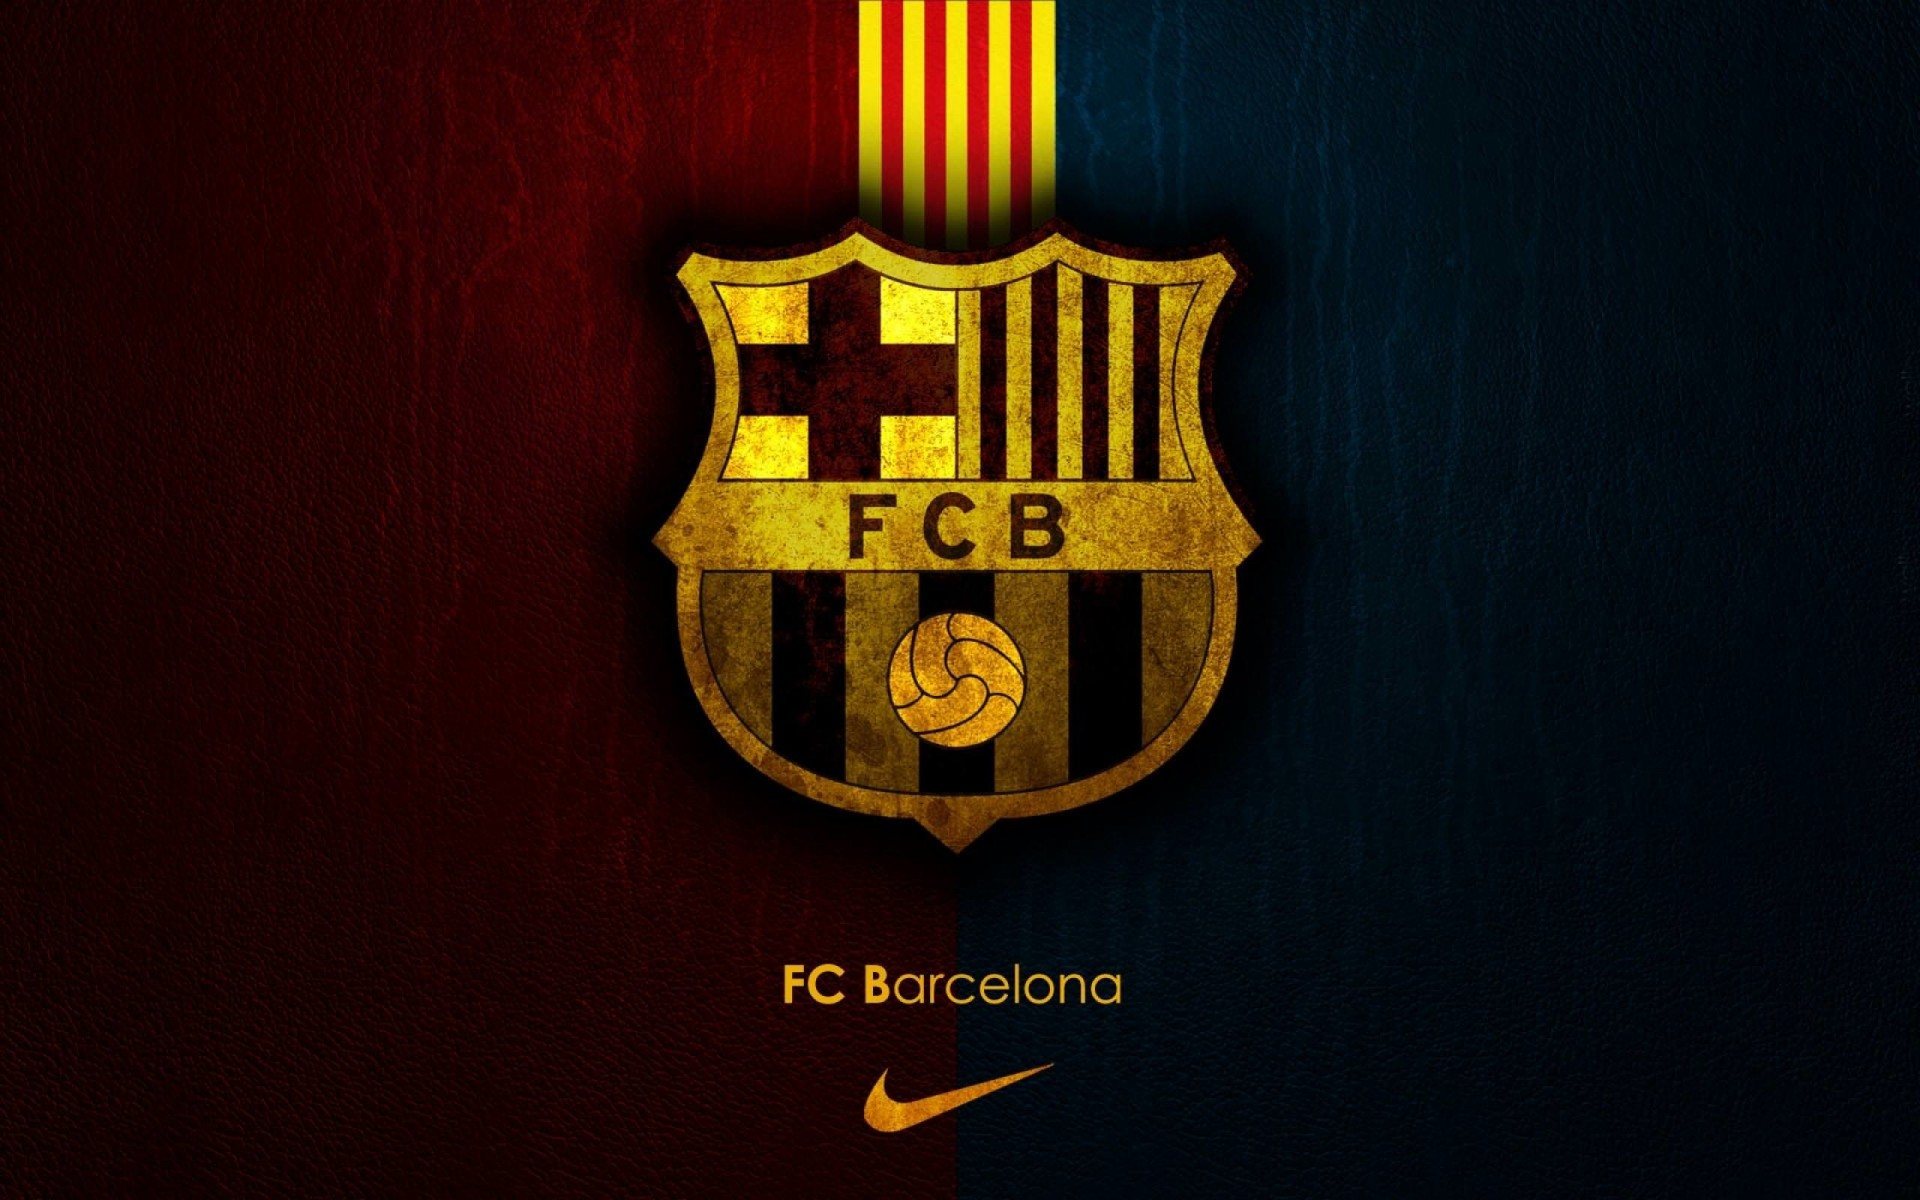 FC Barcelona Wallpaper for Desktop 1920x1200